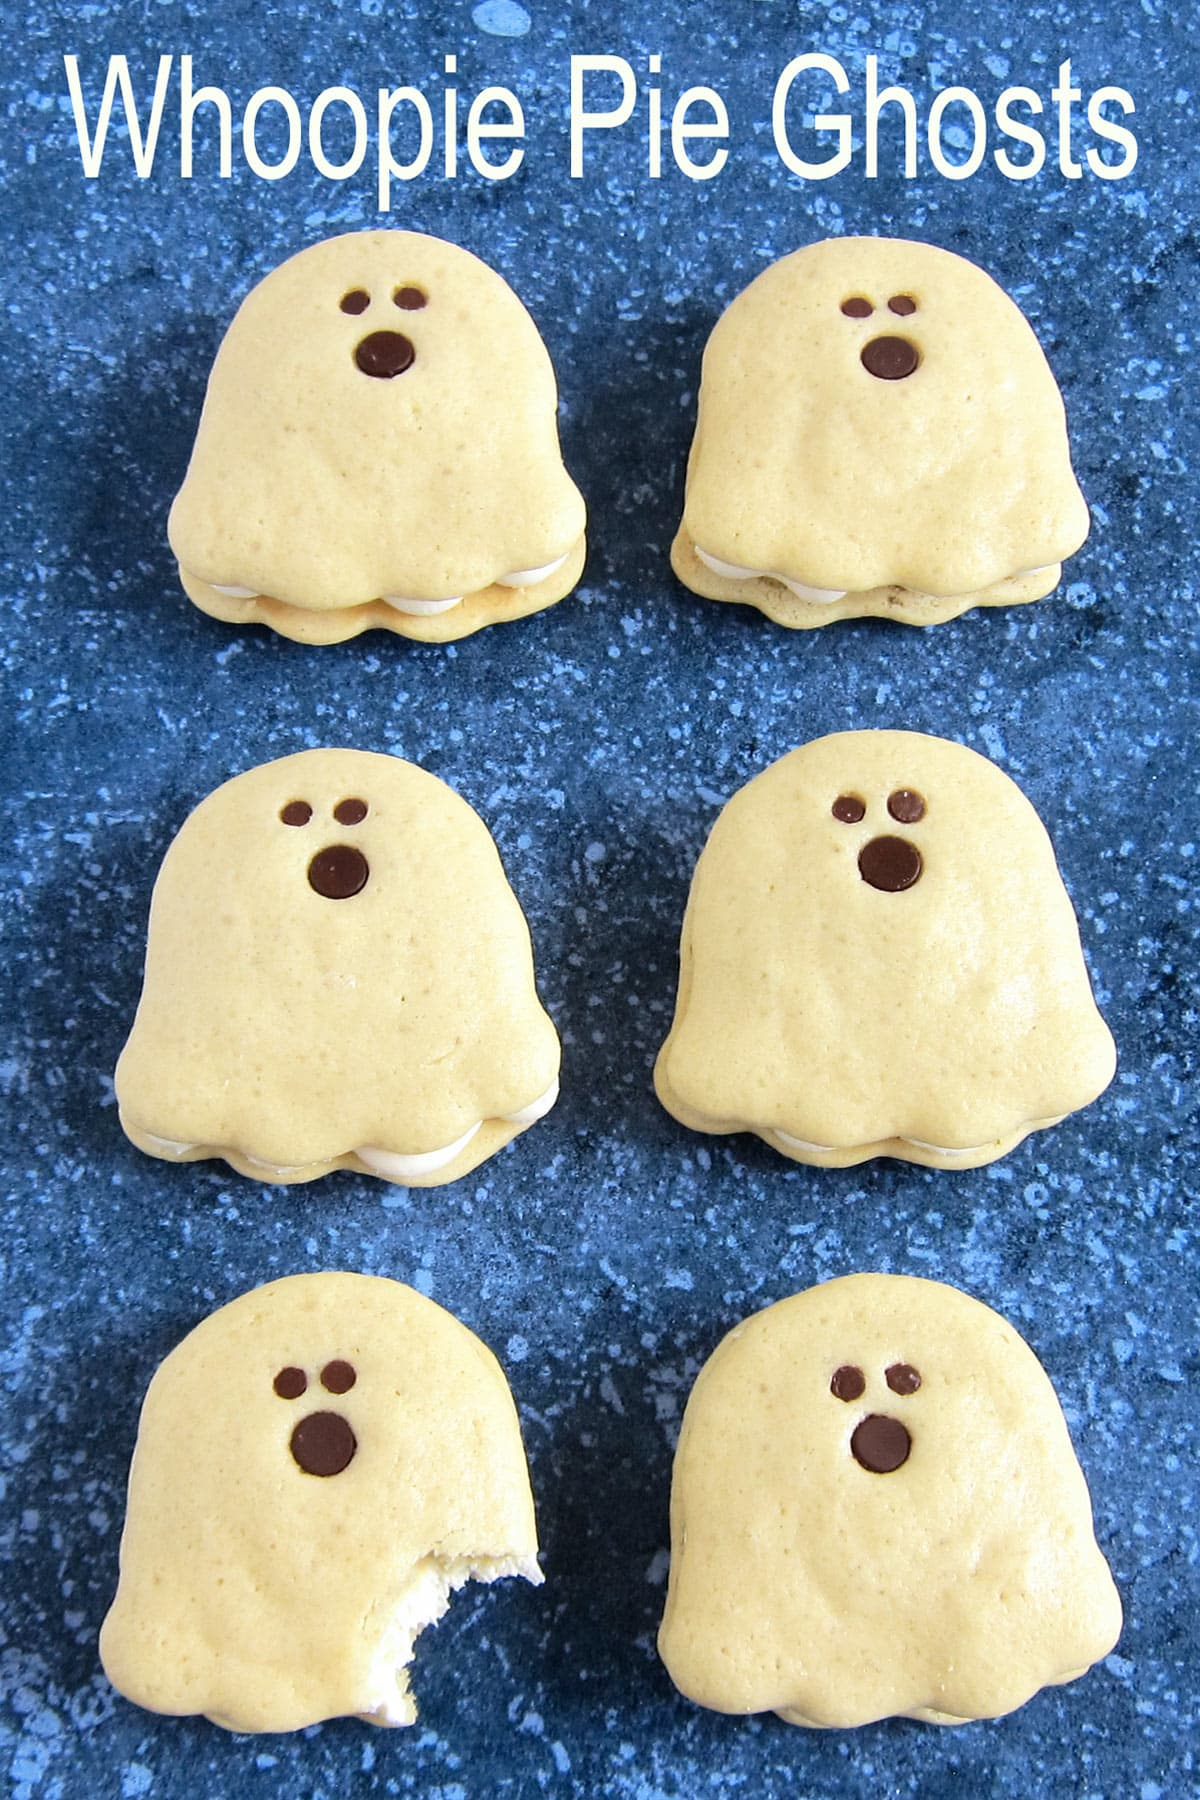 Vanilla Whoopie Pie Ghosts decorated with chocolate chips.